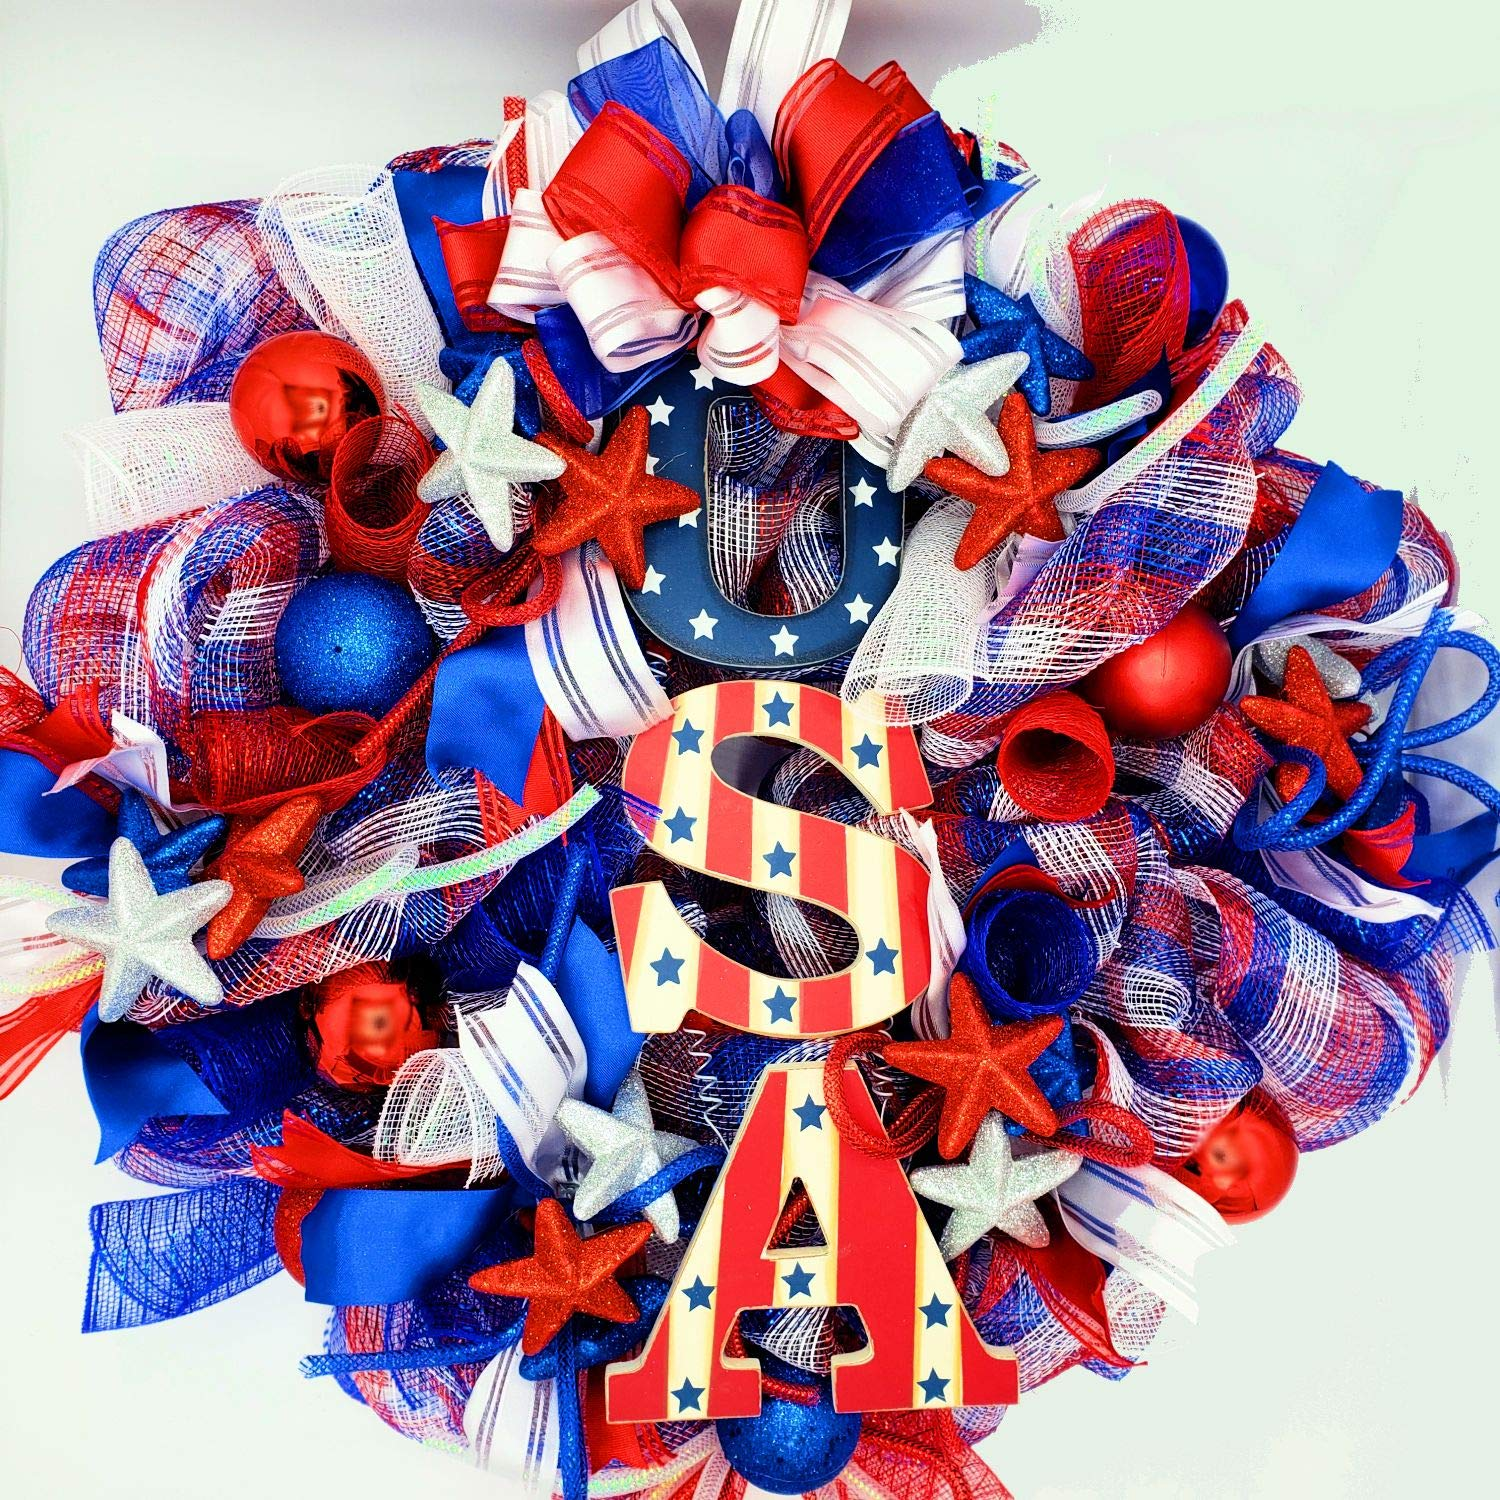 Artificial Christmas Wreaths Deco Mesh Patriotic Wreath - 4th of July - Flag Day - Memorial Day - Veterans Day - Red White Blue Wreath